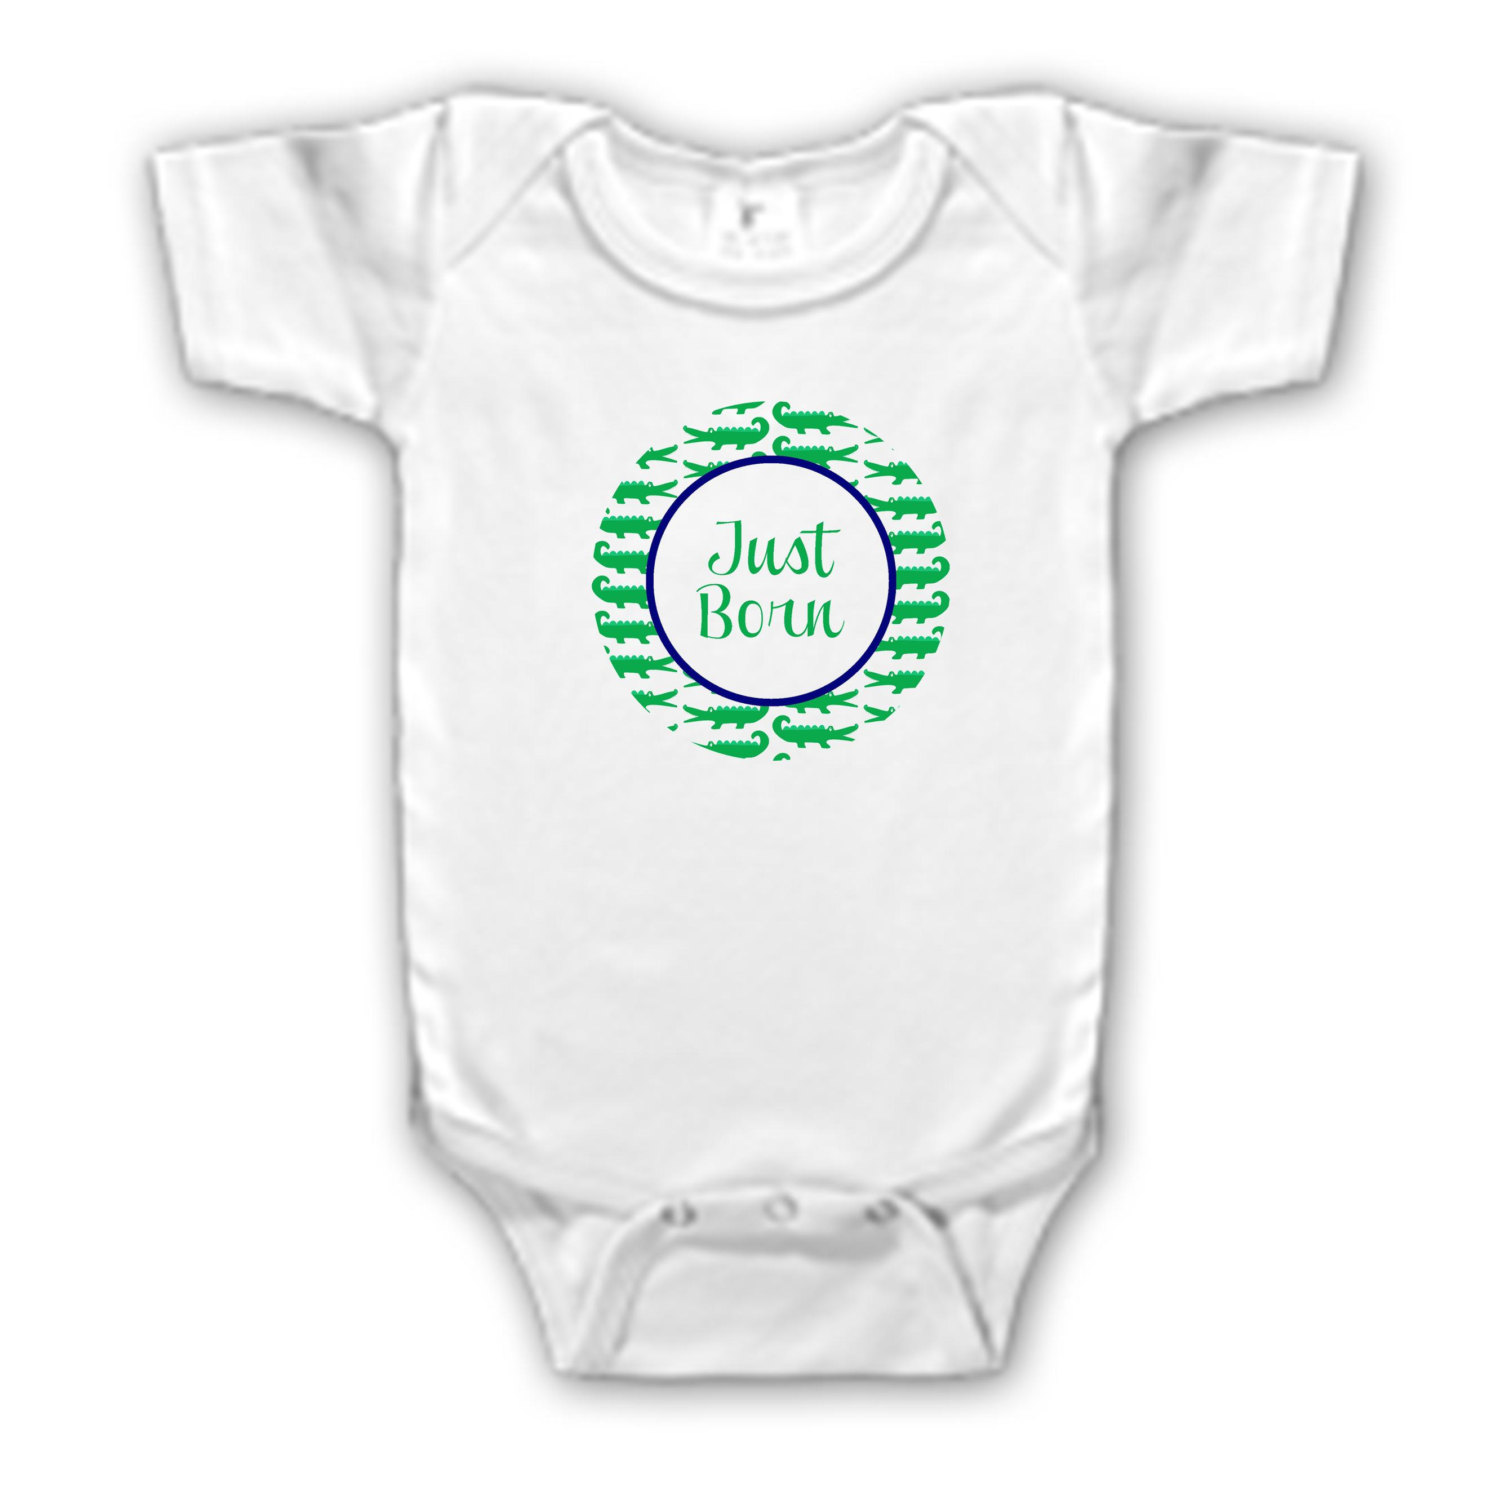 Todays giveaway belly onesie stickers the chirping moms todays giveaway belly onesie stickers buycottarizona